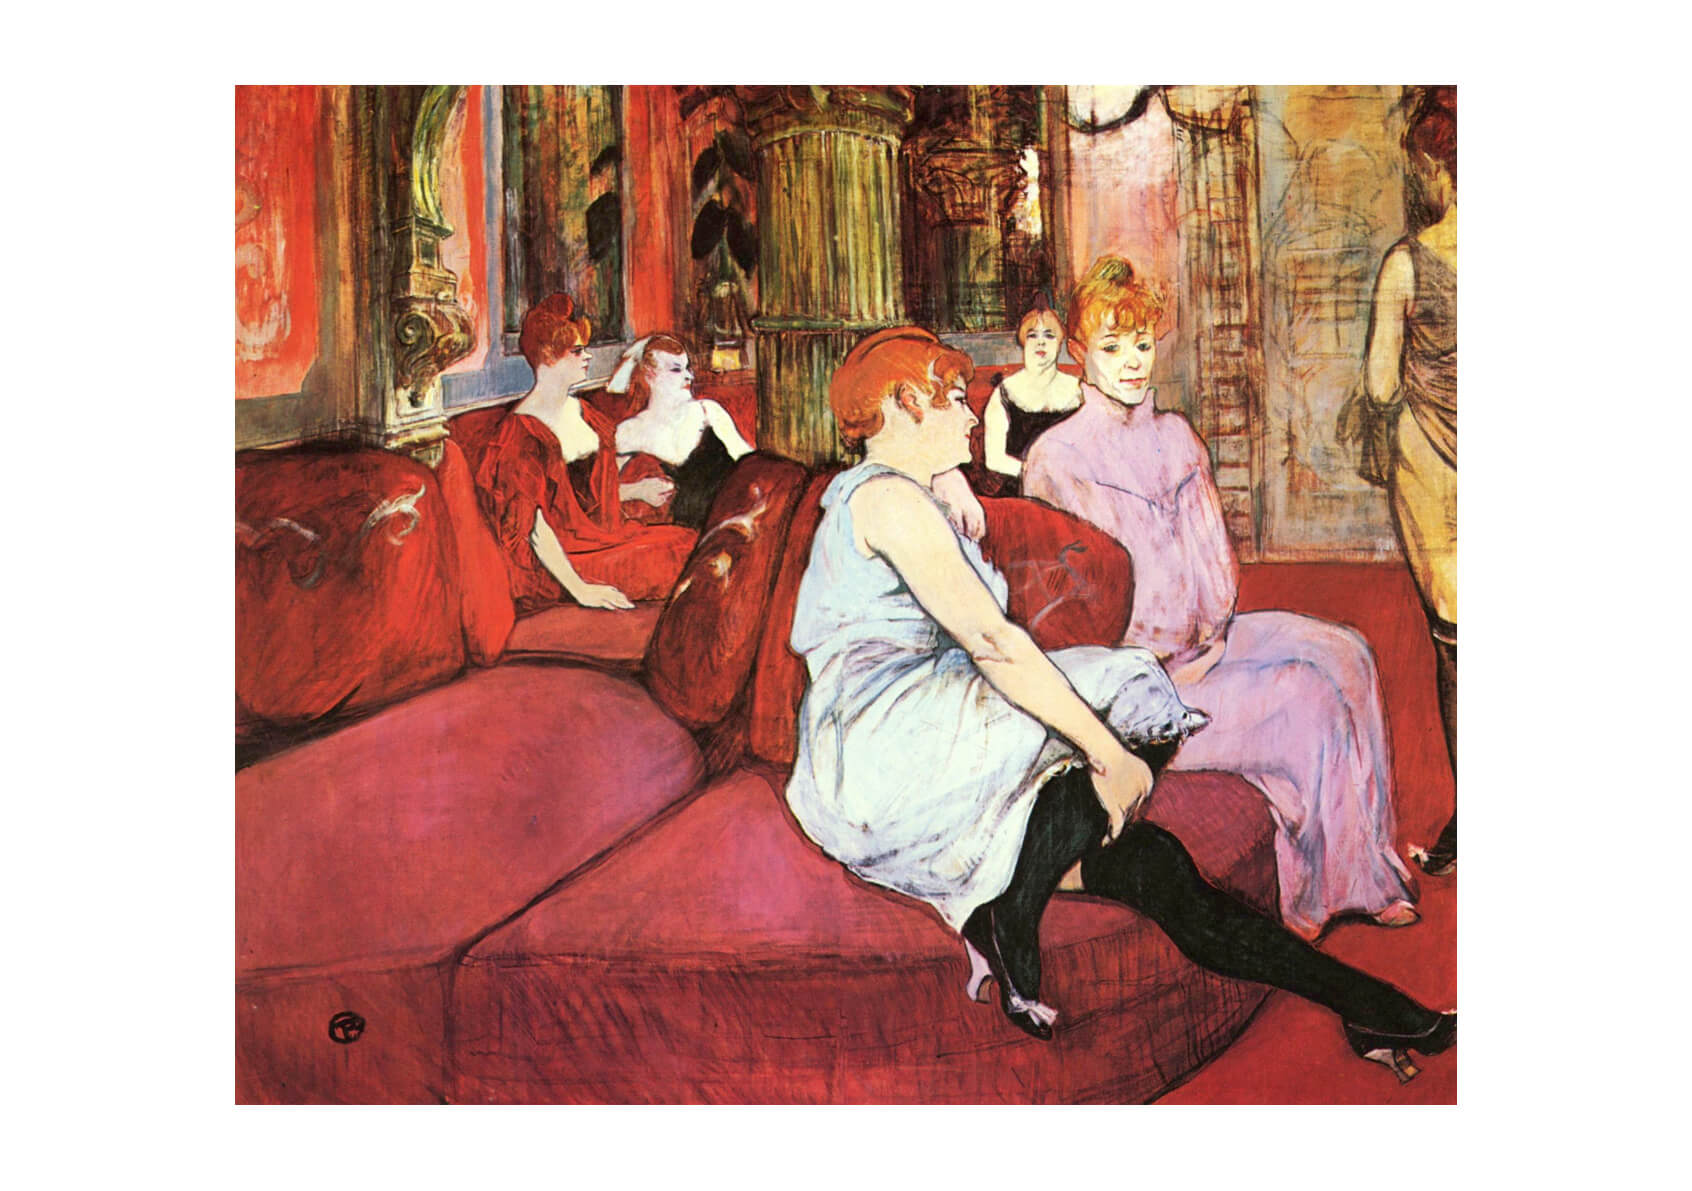 Henri Toulouse Lautrec - In the Room